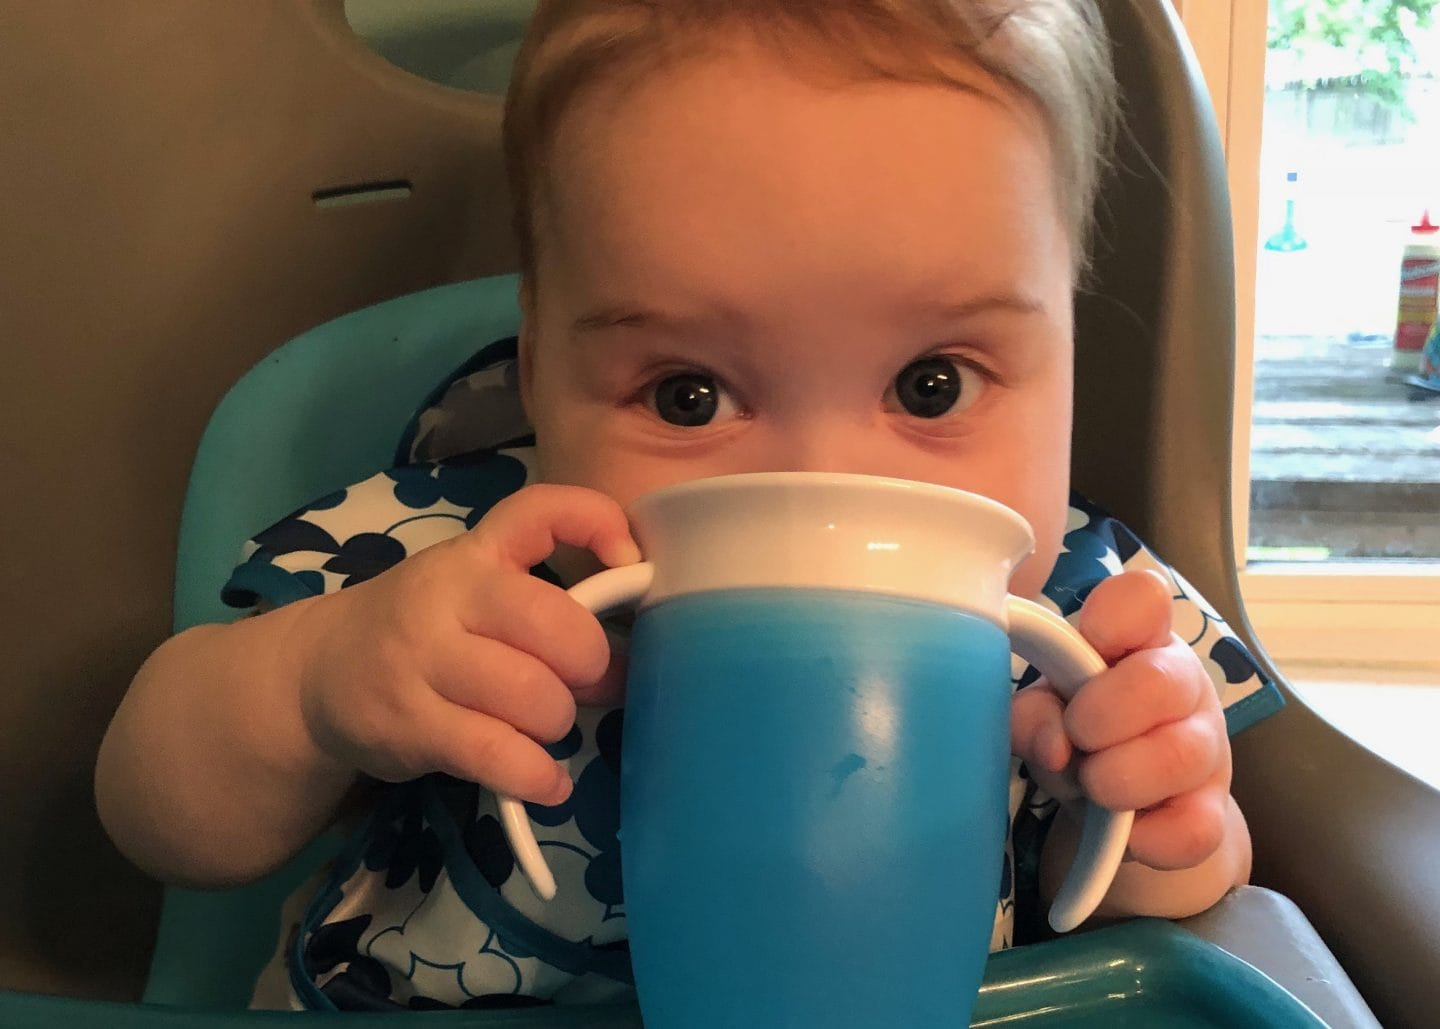 baby drinking from sippy cup using blw method in high chair